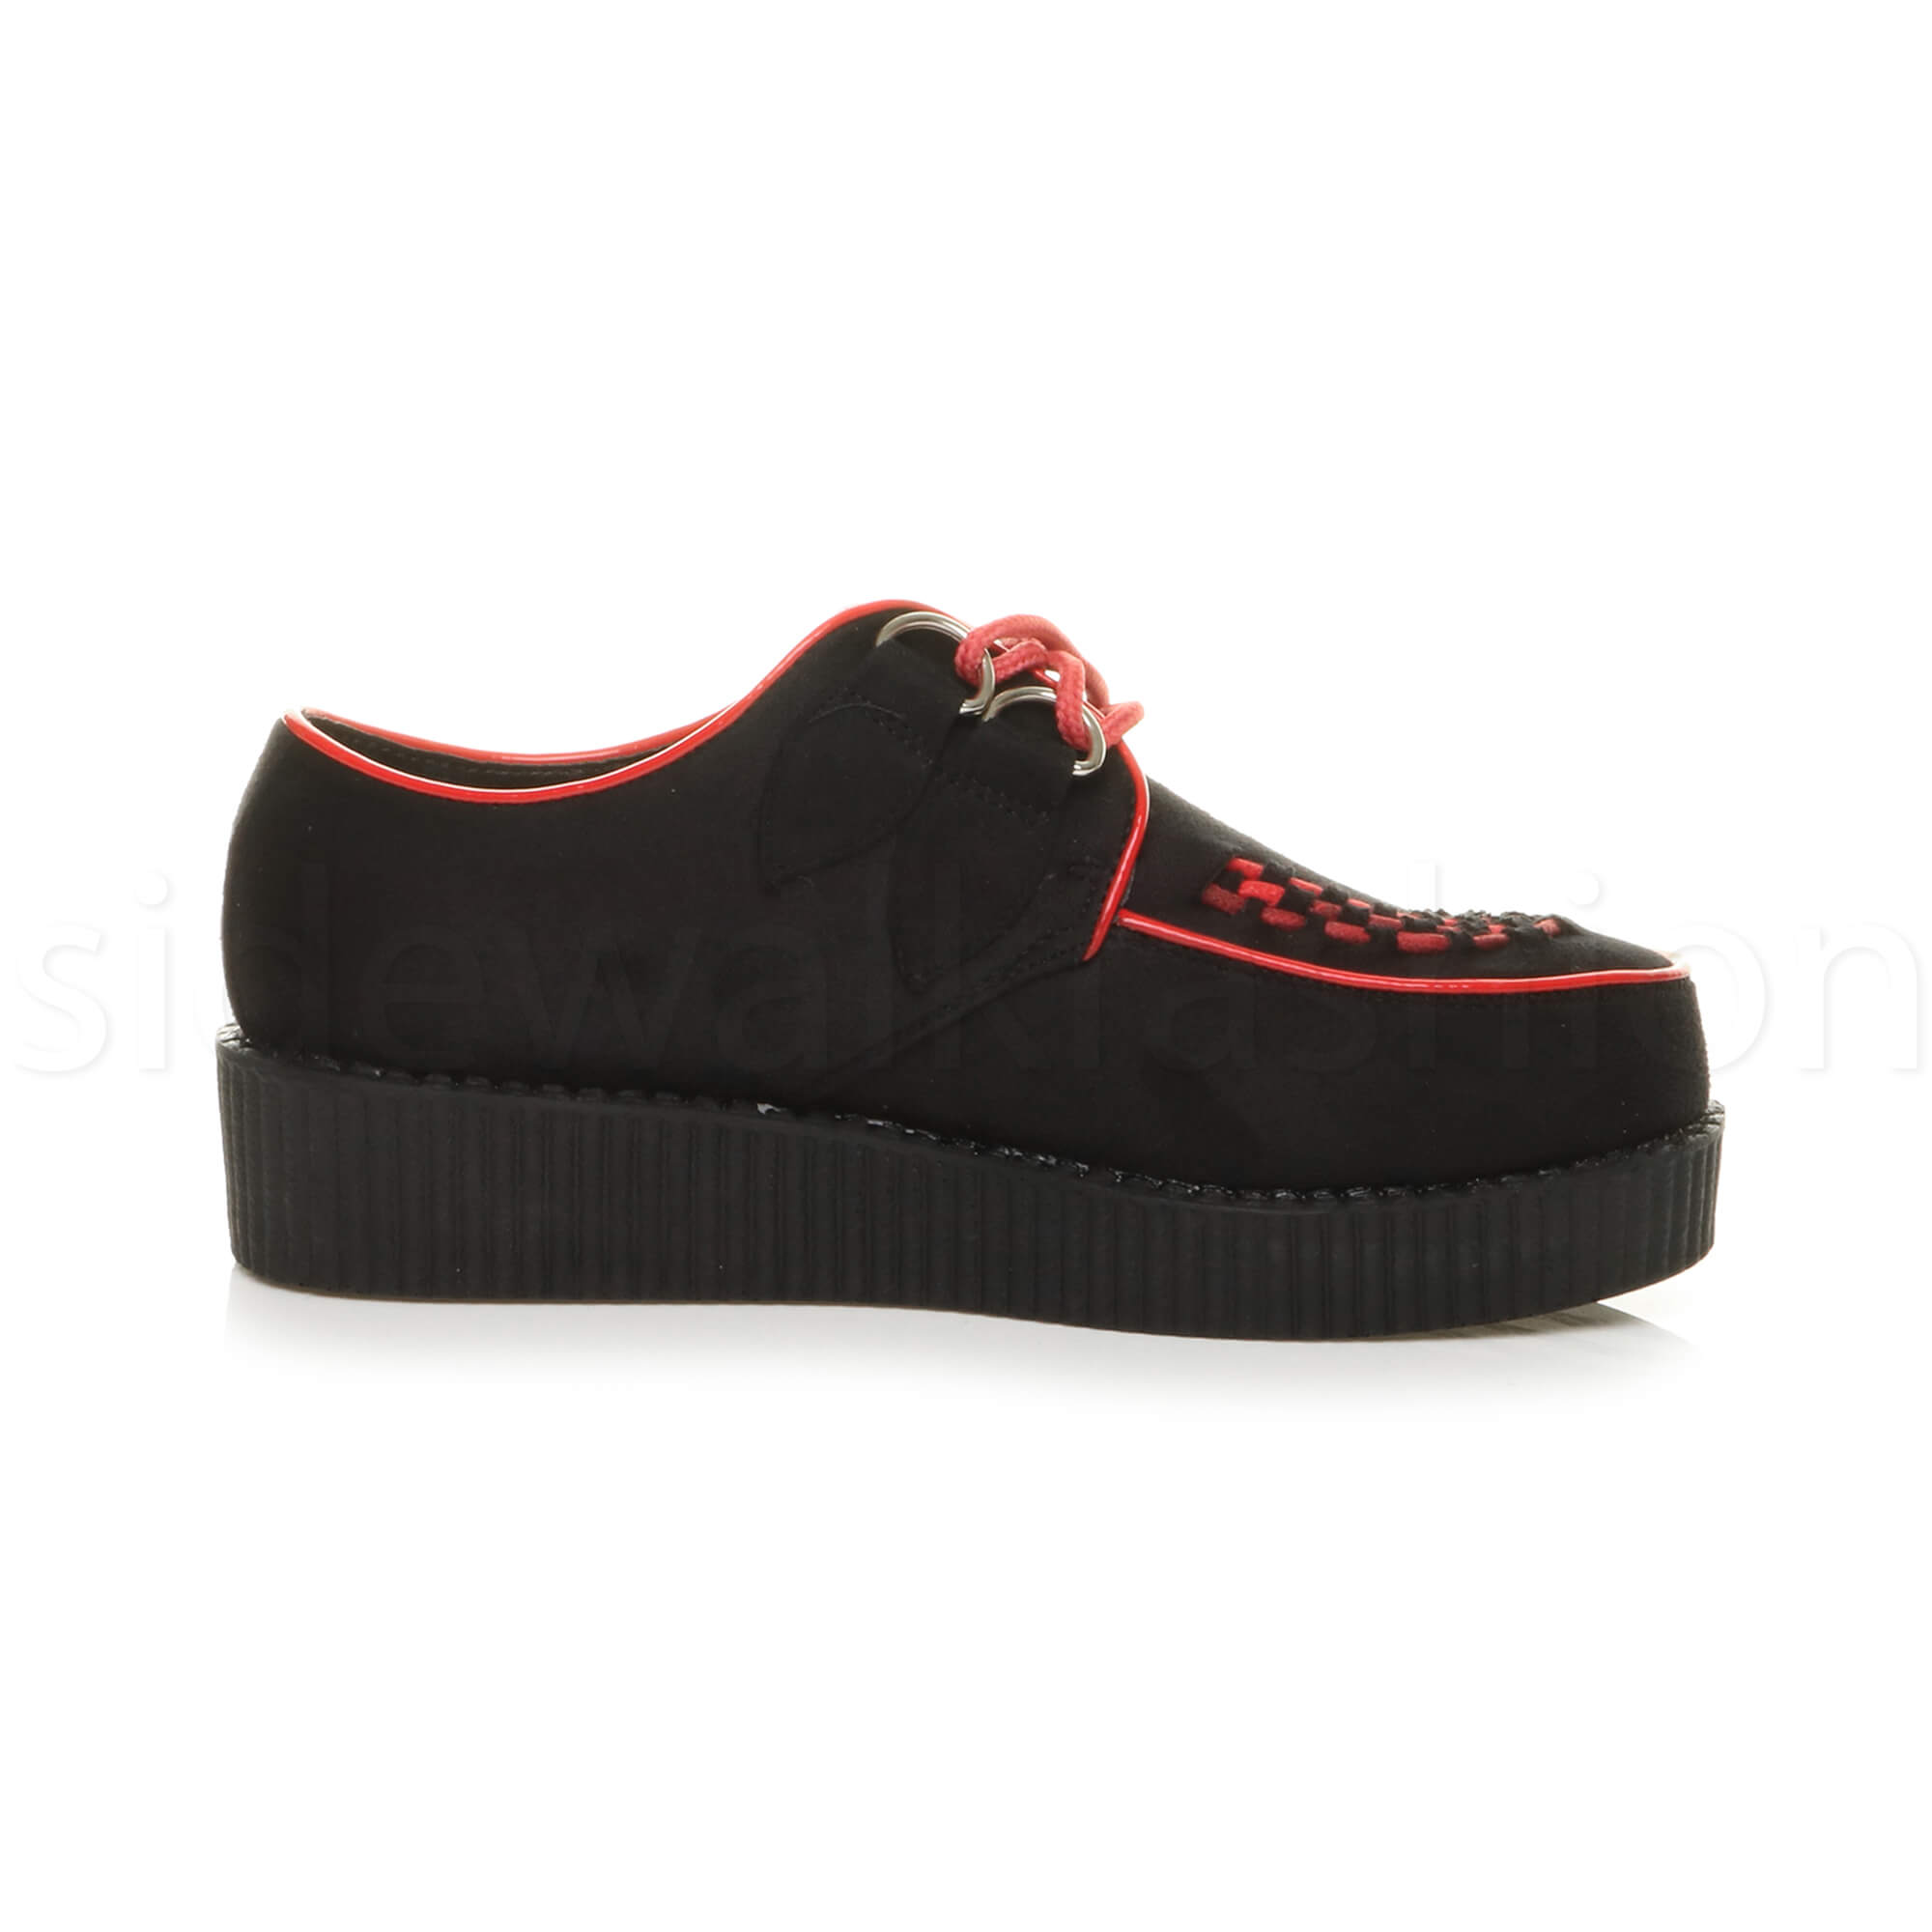 Womens-ladies-flat-platform-wedge-lace-up-goth-punk-creepers-shoes-boots-size miniatura 9